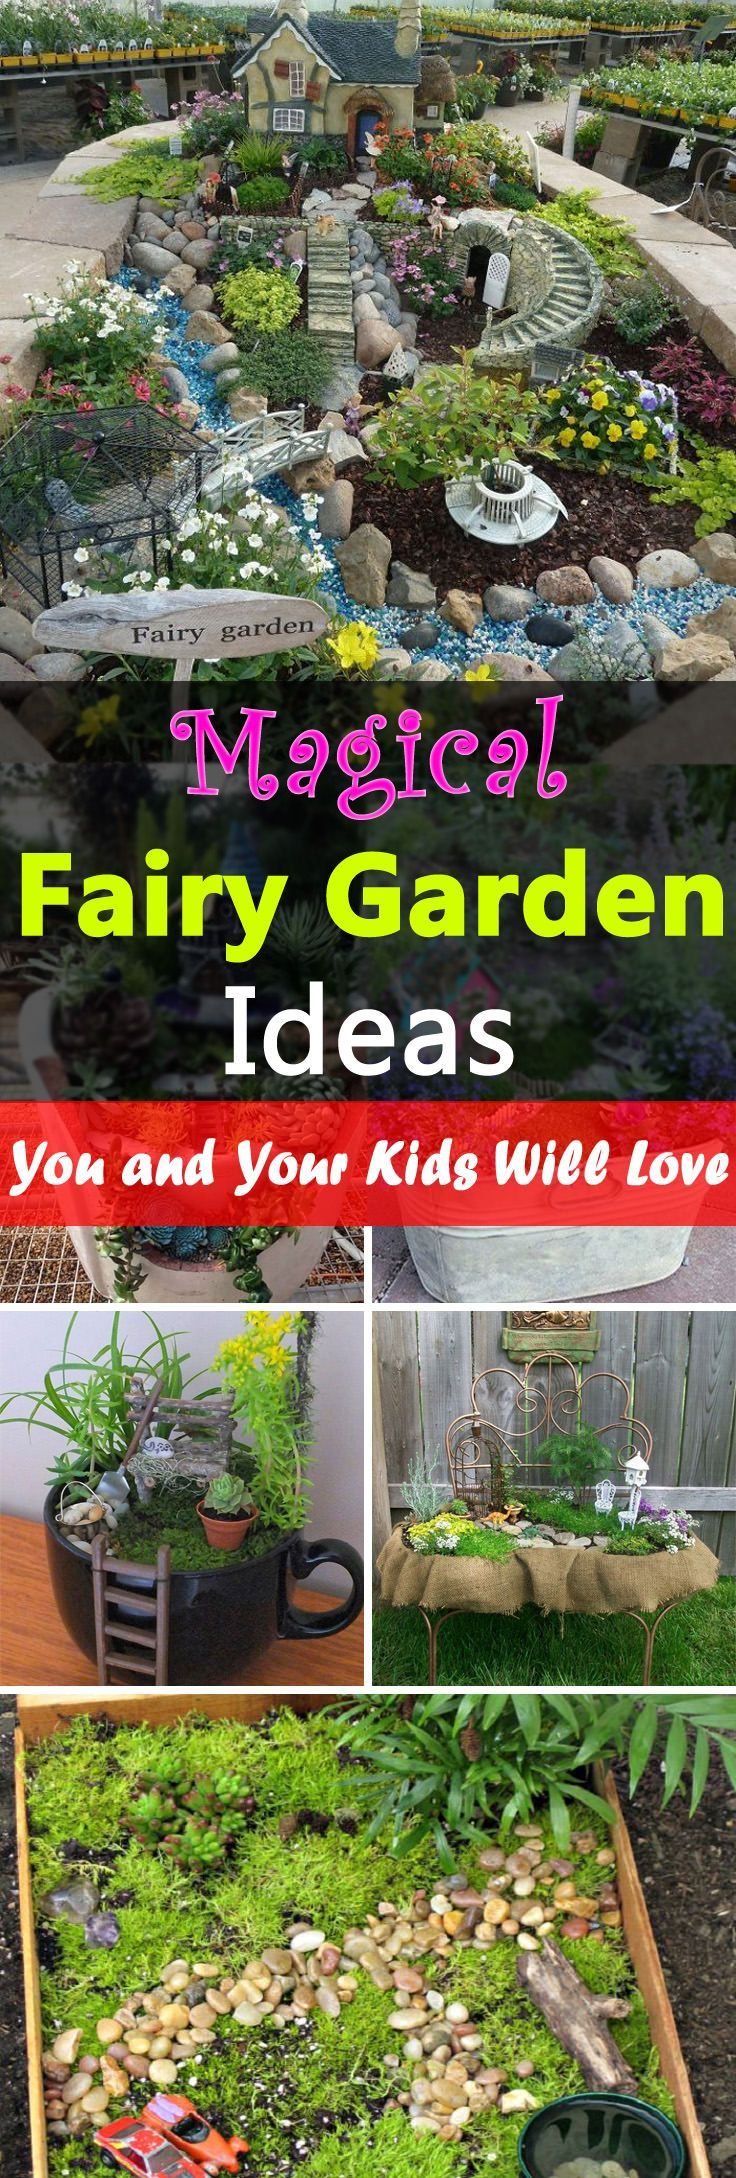 18 Magical Fairy Garden Ideas  The Kids Will Love Them, And You Too